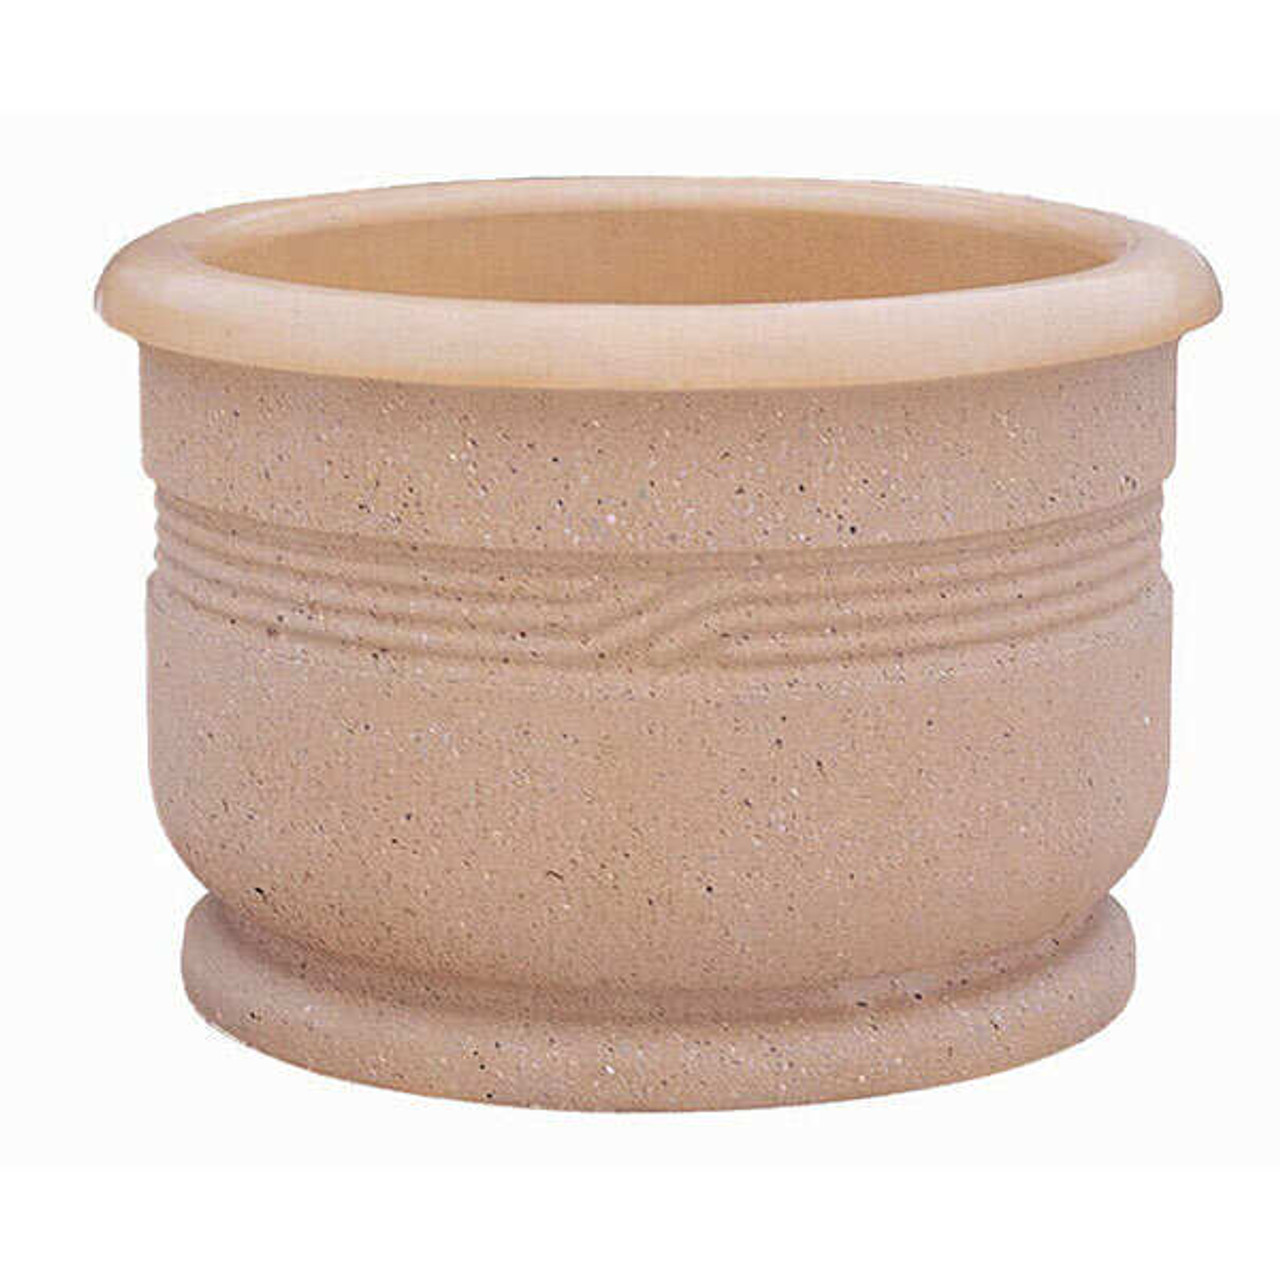 26 x 24 Decorative Classical Outdoor Round Concrete Planter WS4027 Weatherstone Buff